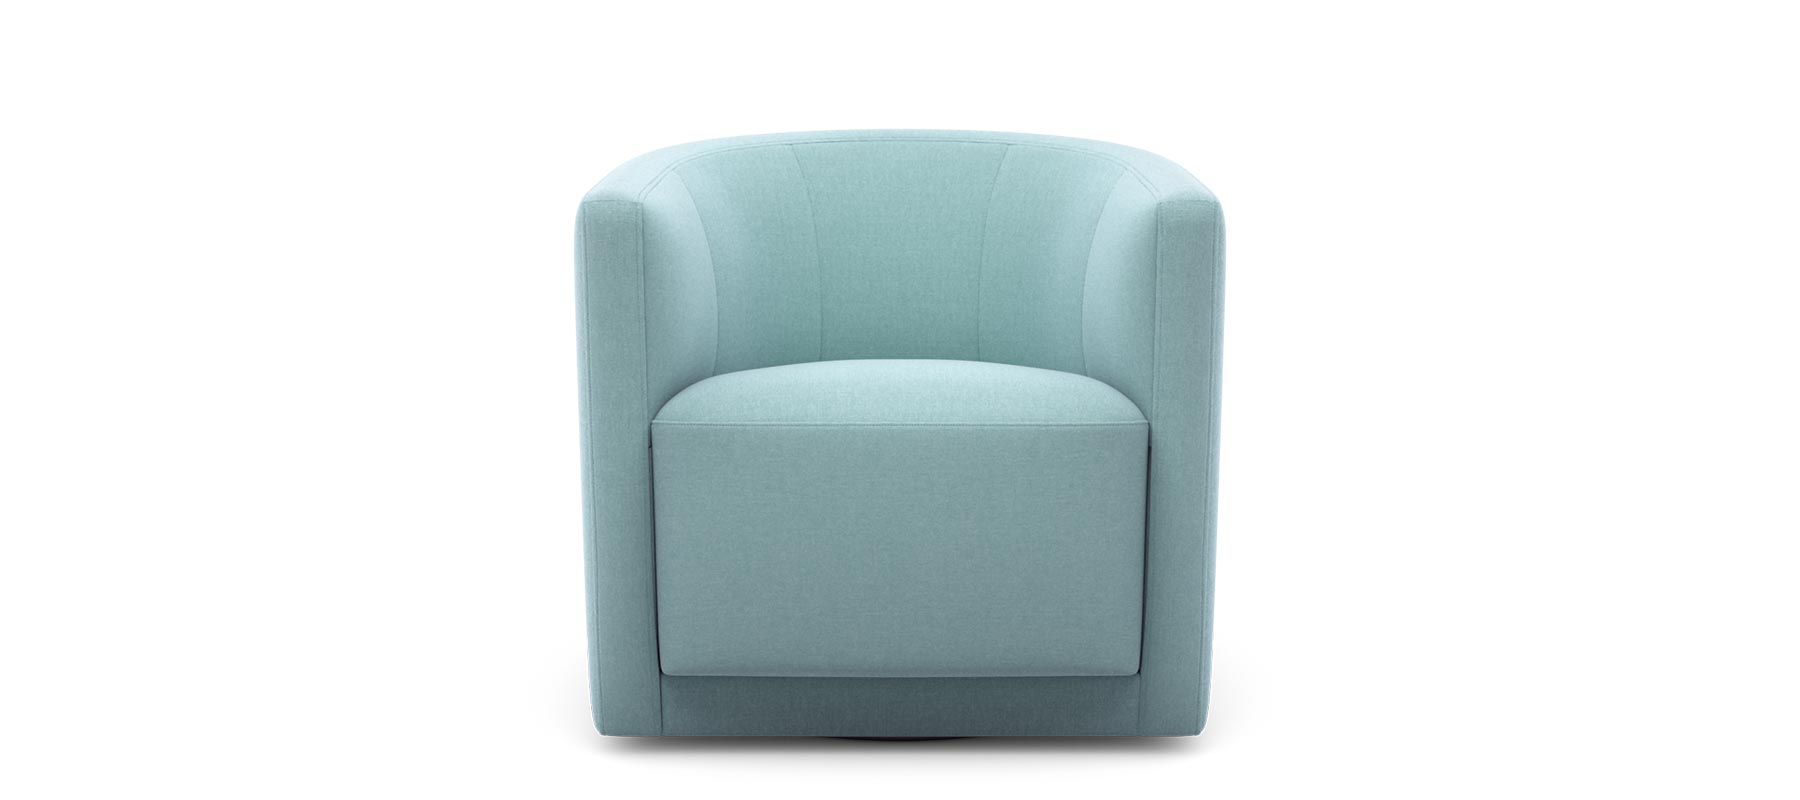 Oliver Tub Swivel Chair Accent Chair Round Armchair King Living